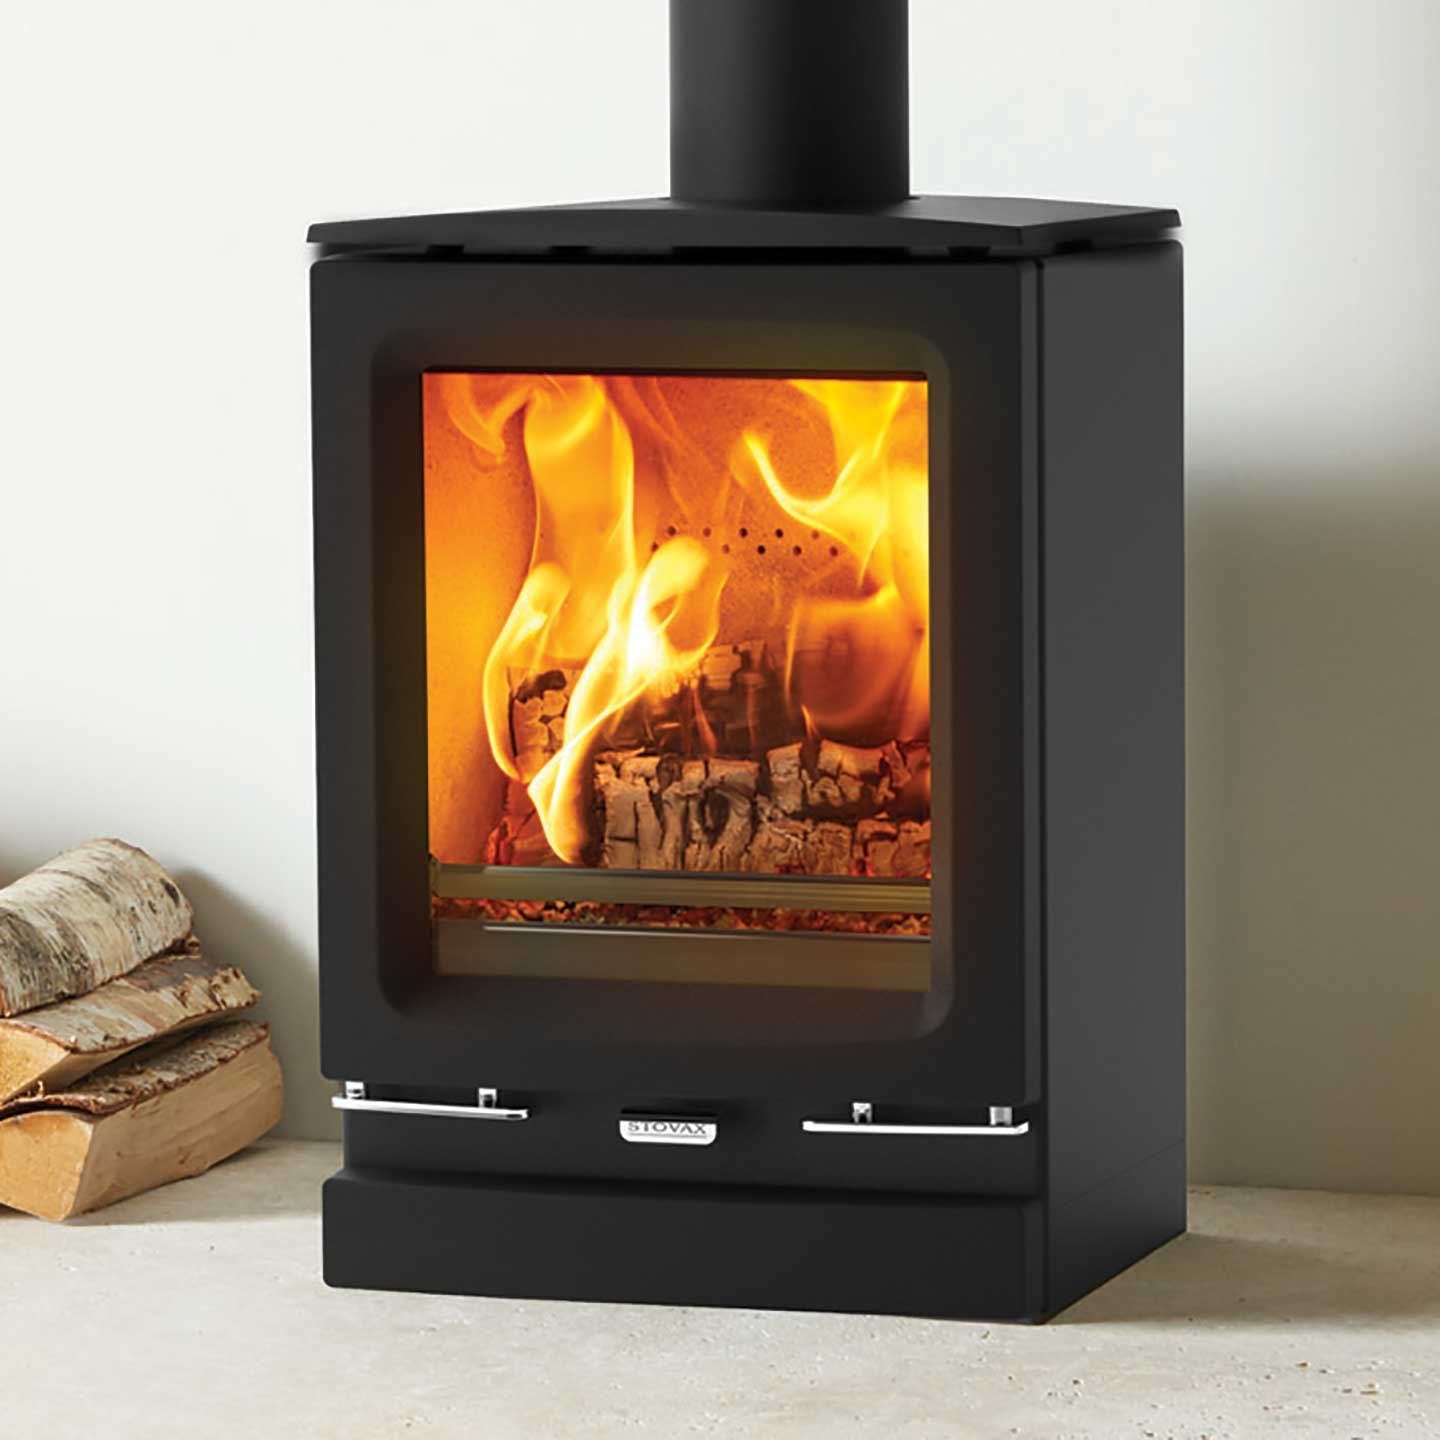 Stovax Vogue Small Wood Burning Stove The Stove Site